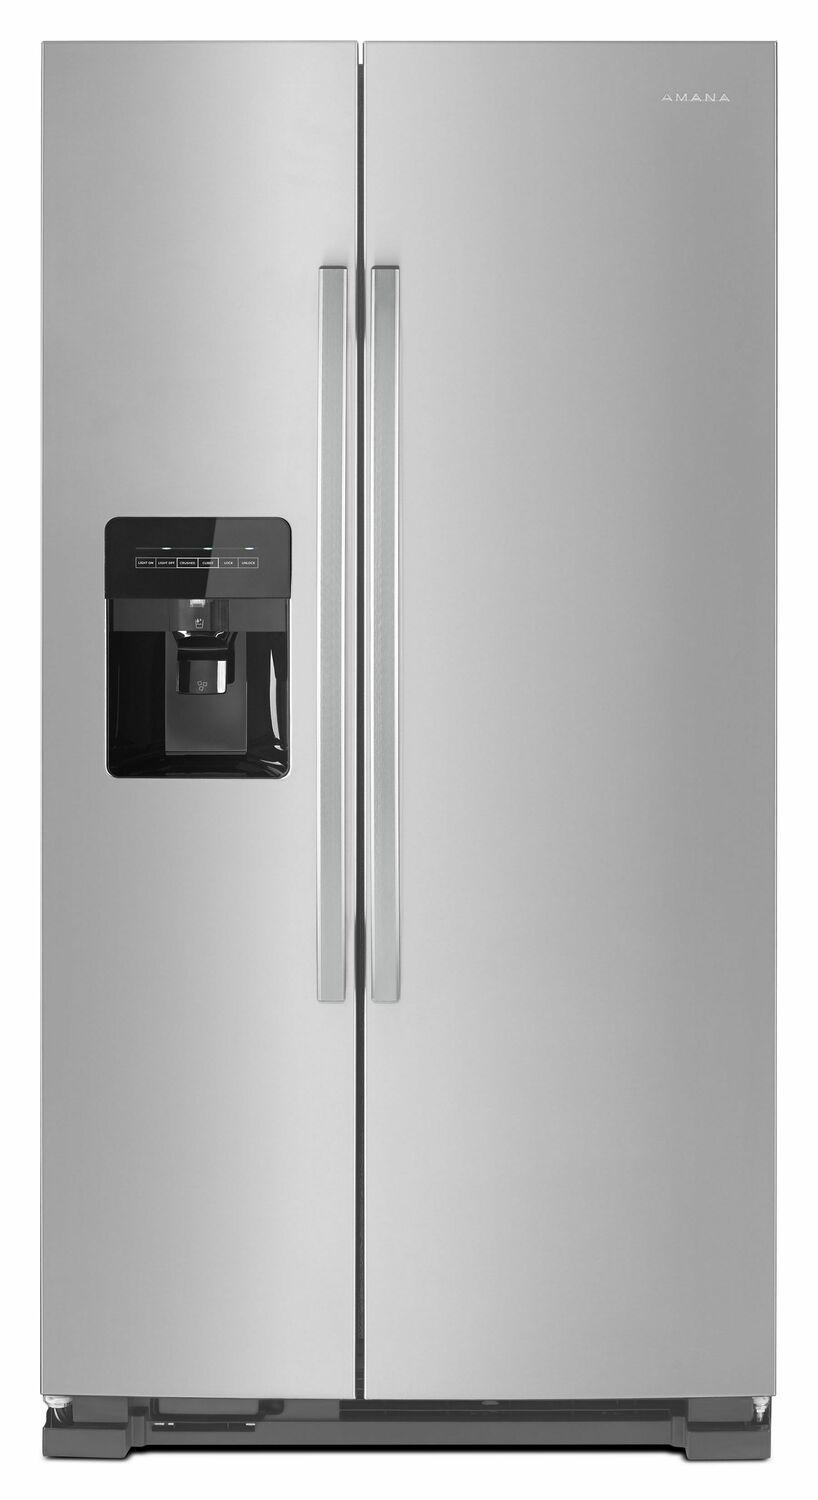 Amana33-Inch Side-By-Side Refrigerator With Dual Pad External Ice And Water Dispenser - Black-On-Stainless